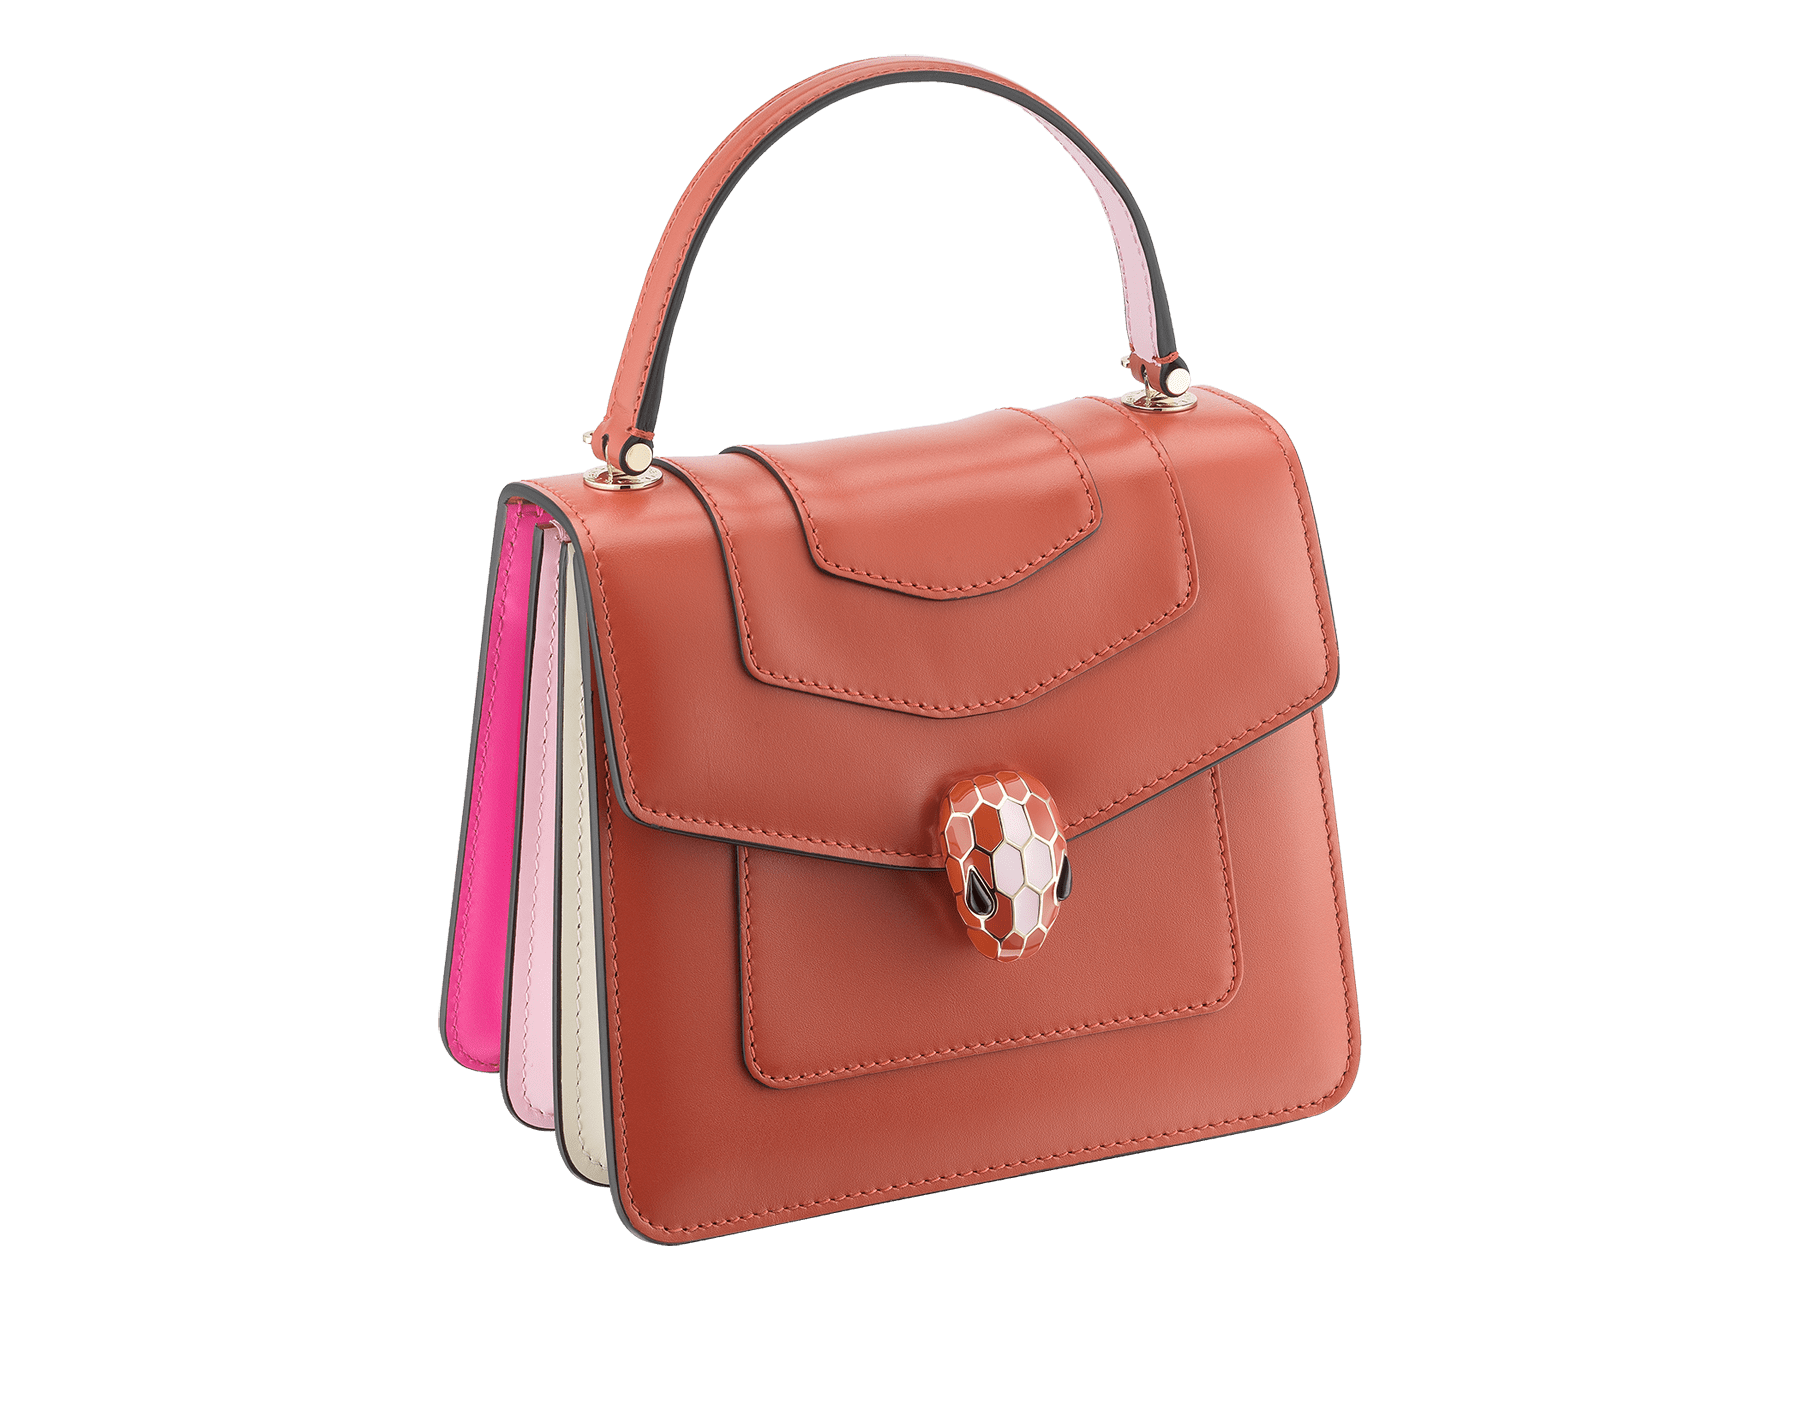 Serpenti Forever crossbody bag in imperial topaz calf leather with Roman garnet, rosa di francia and white agate calf leather sides. Iconic snakehead closure in light gold plated brass embellished with imperial topaz and rosa di francia enamel and black onyx eyes. 288889 image 2